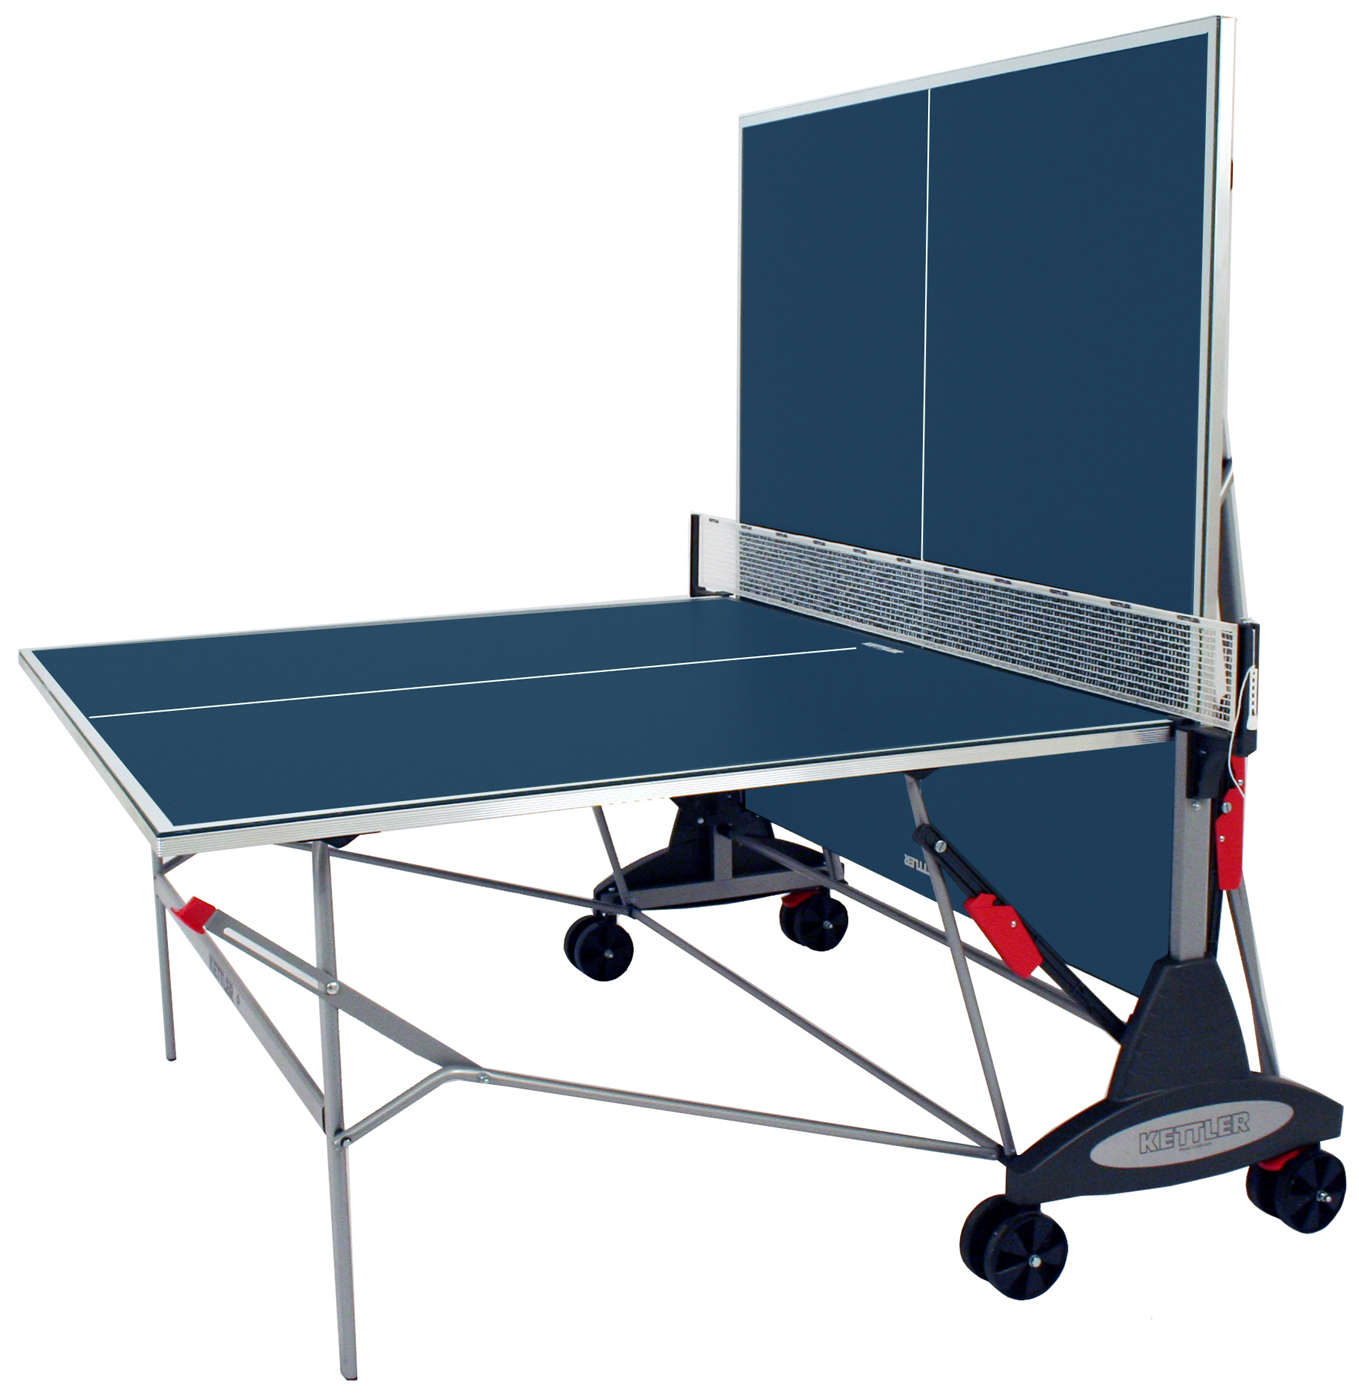 Kettler stockholm gt outdoor ping pong table for Table kettler